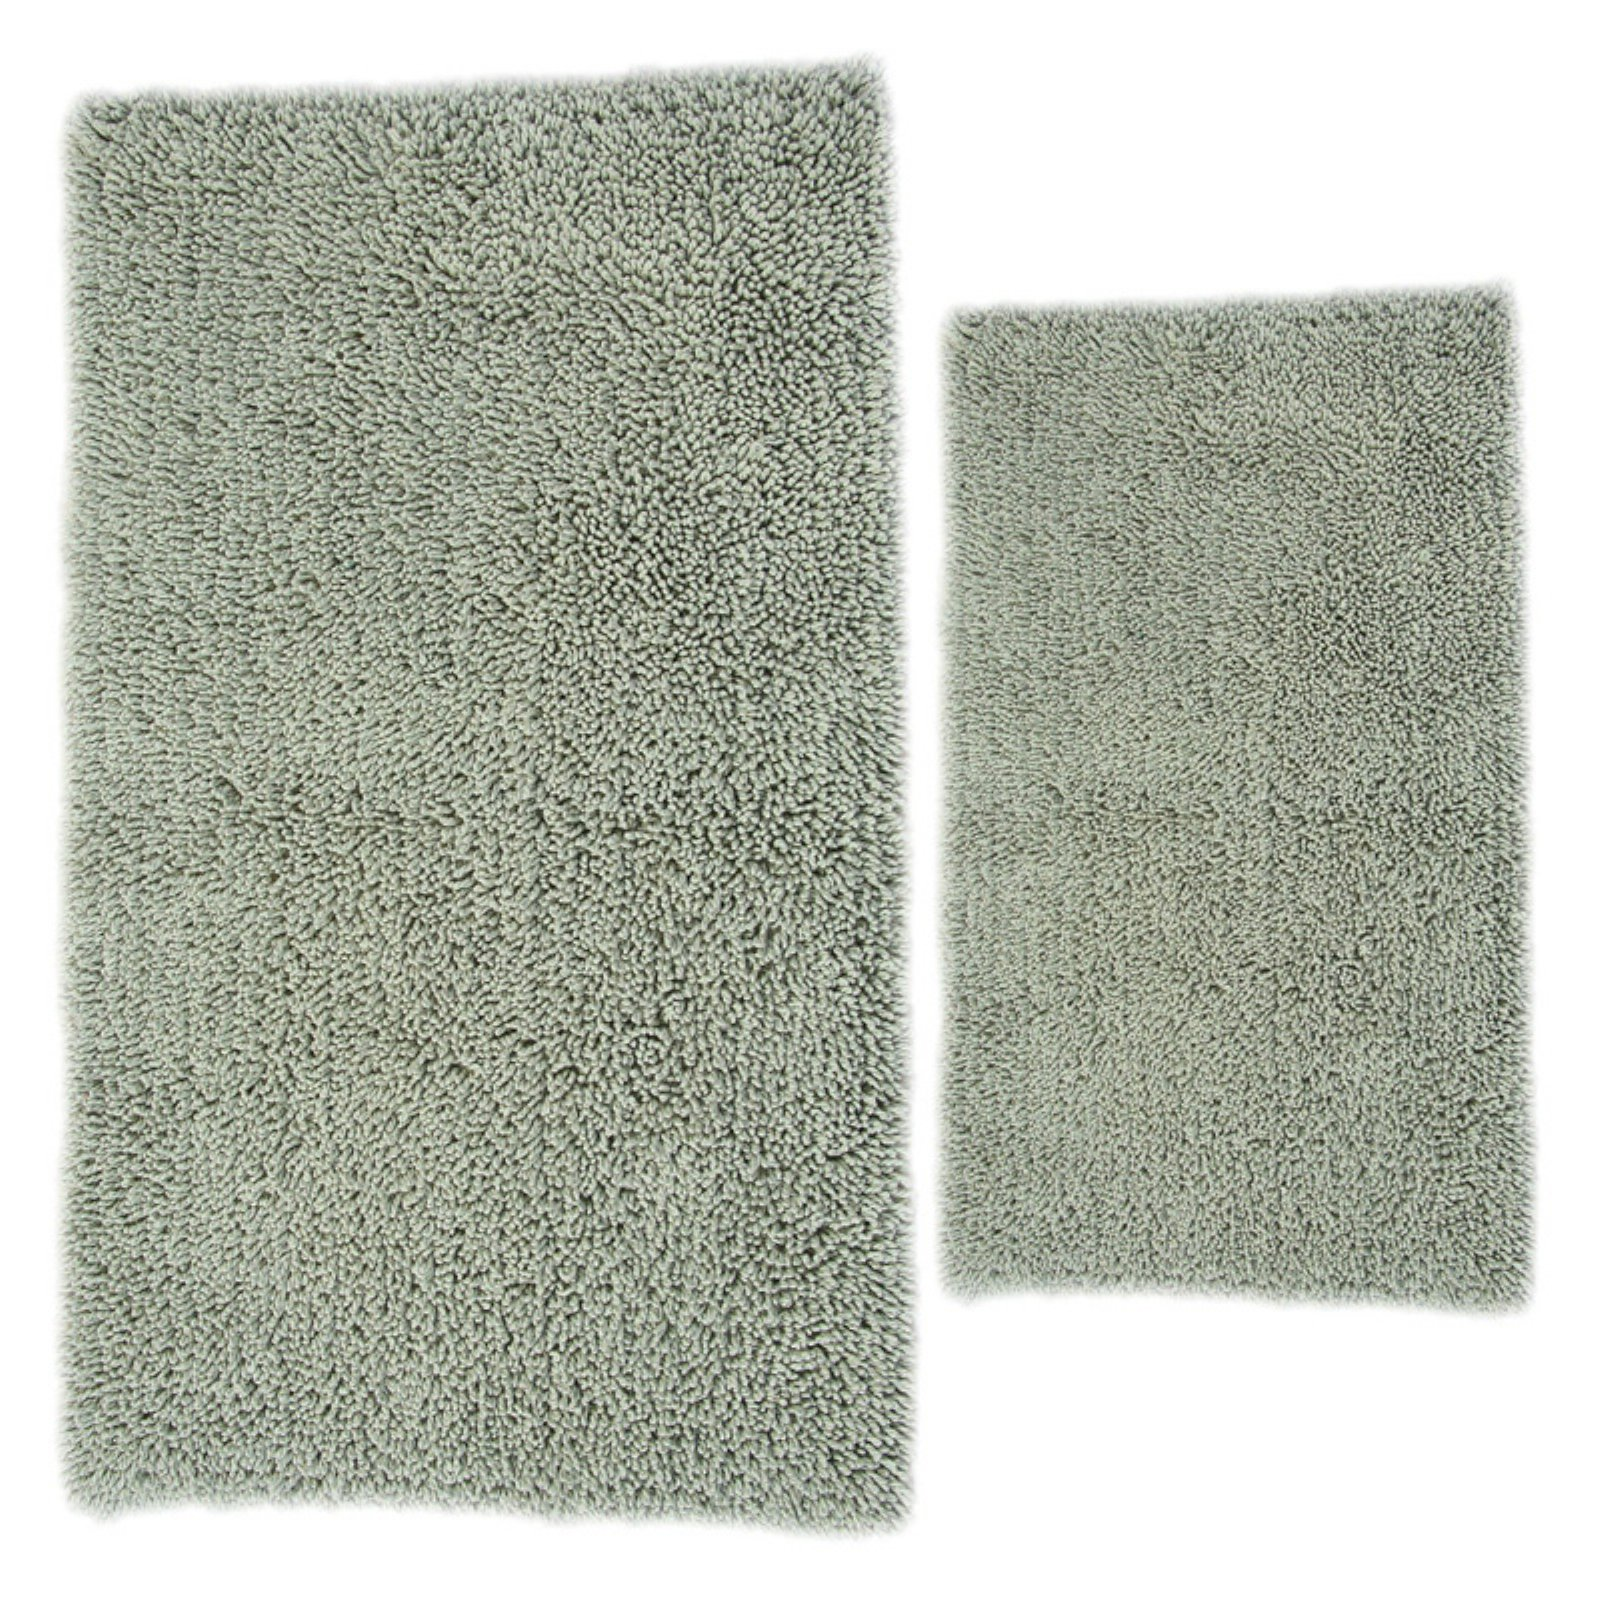 Elegance Collection Melborne Bath Rug - Set of 2